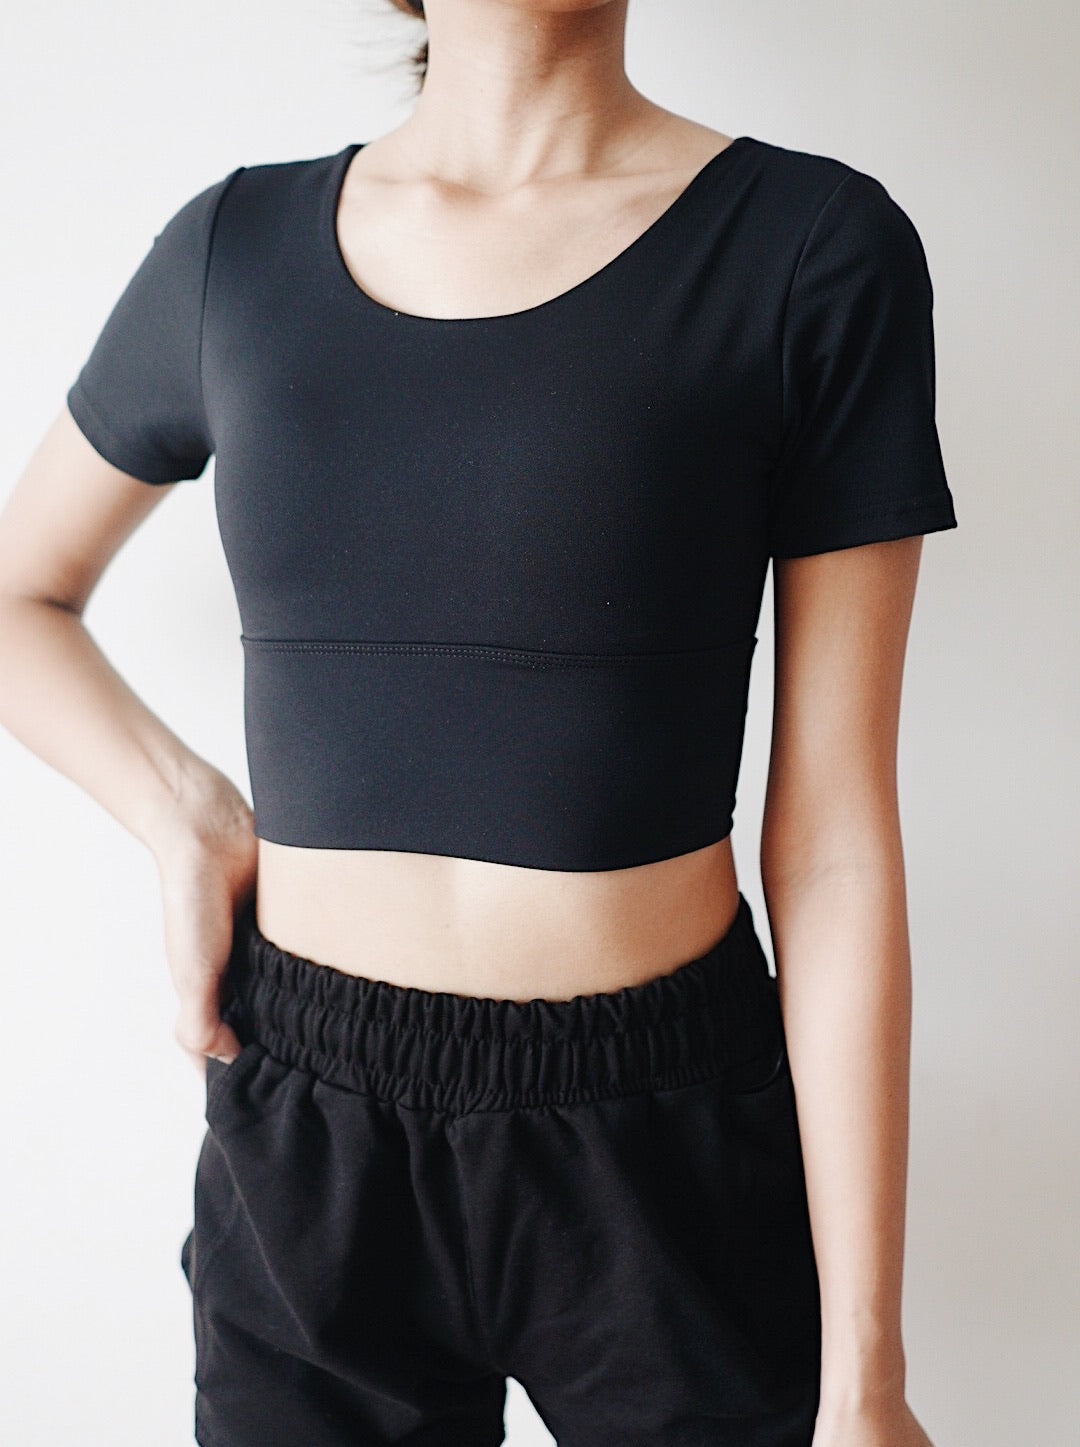 Chic Crop Top - Black